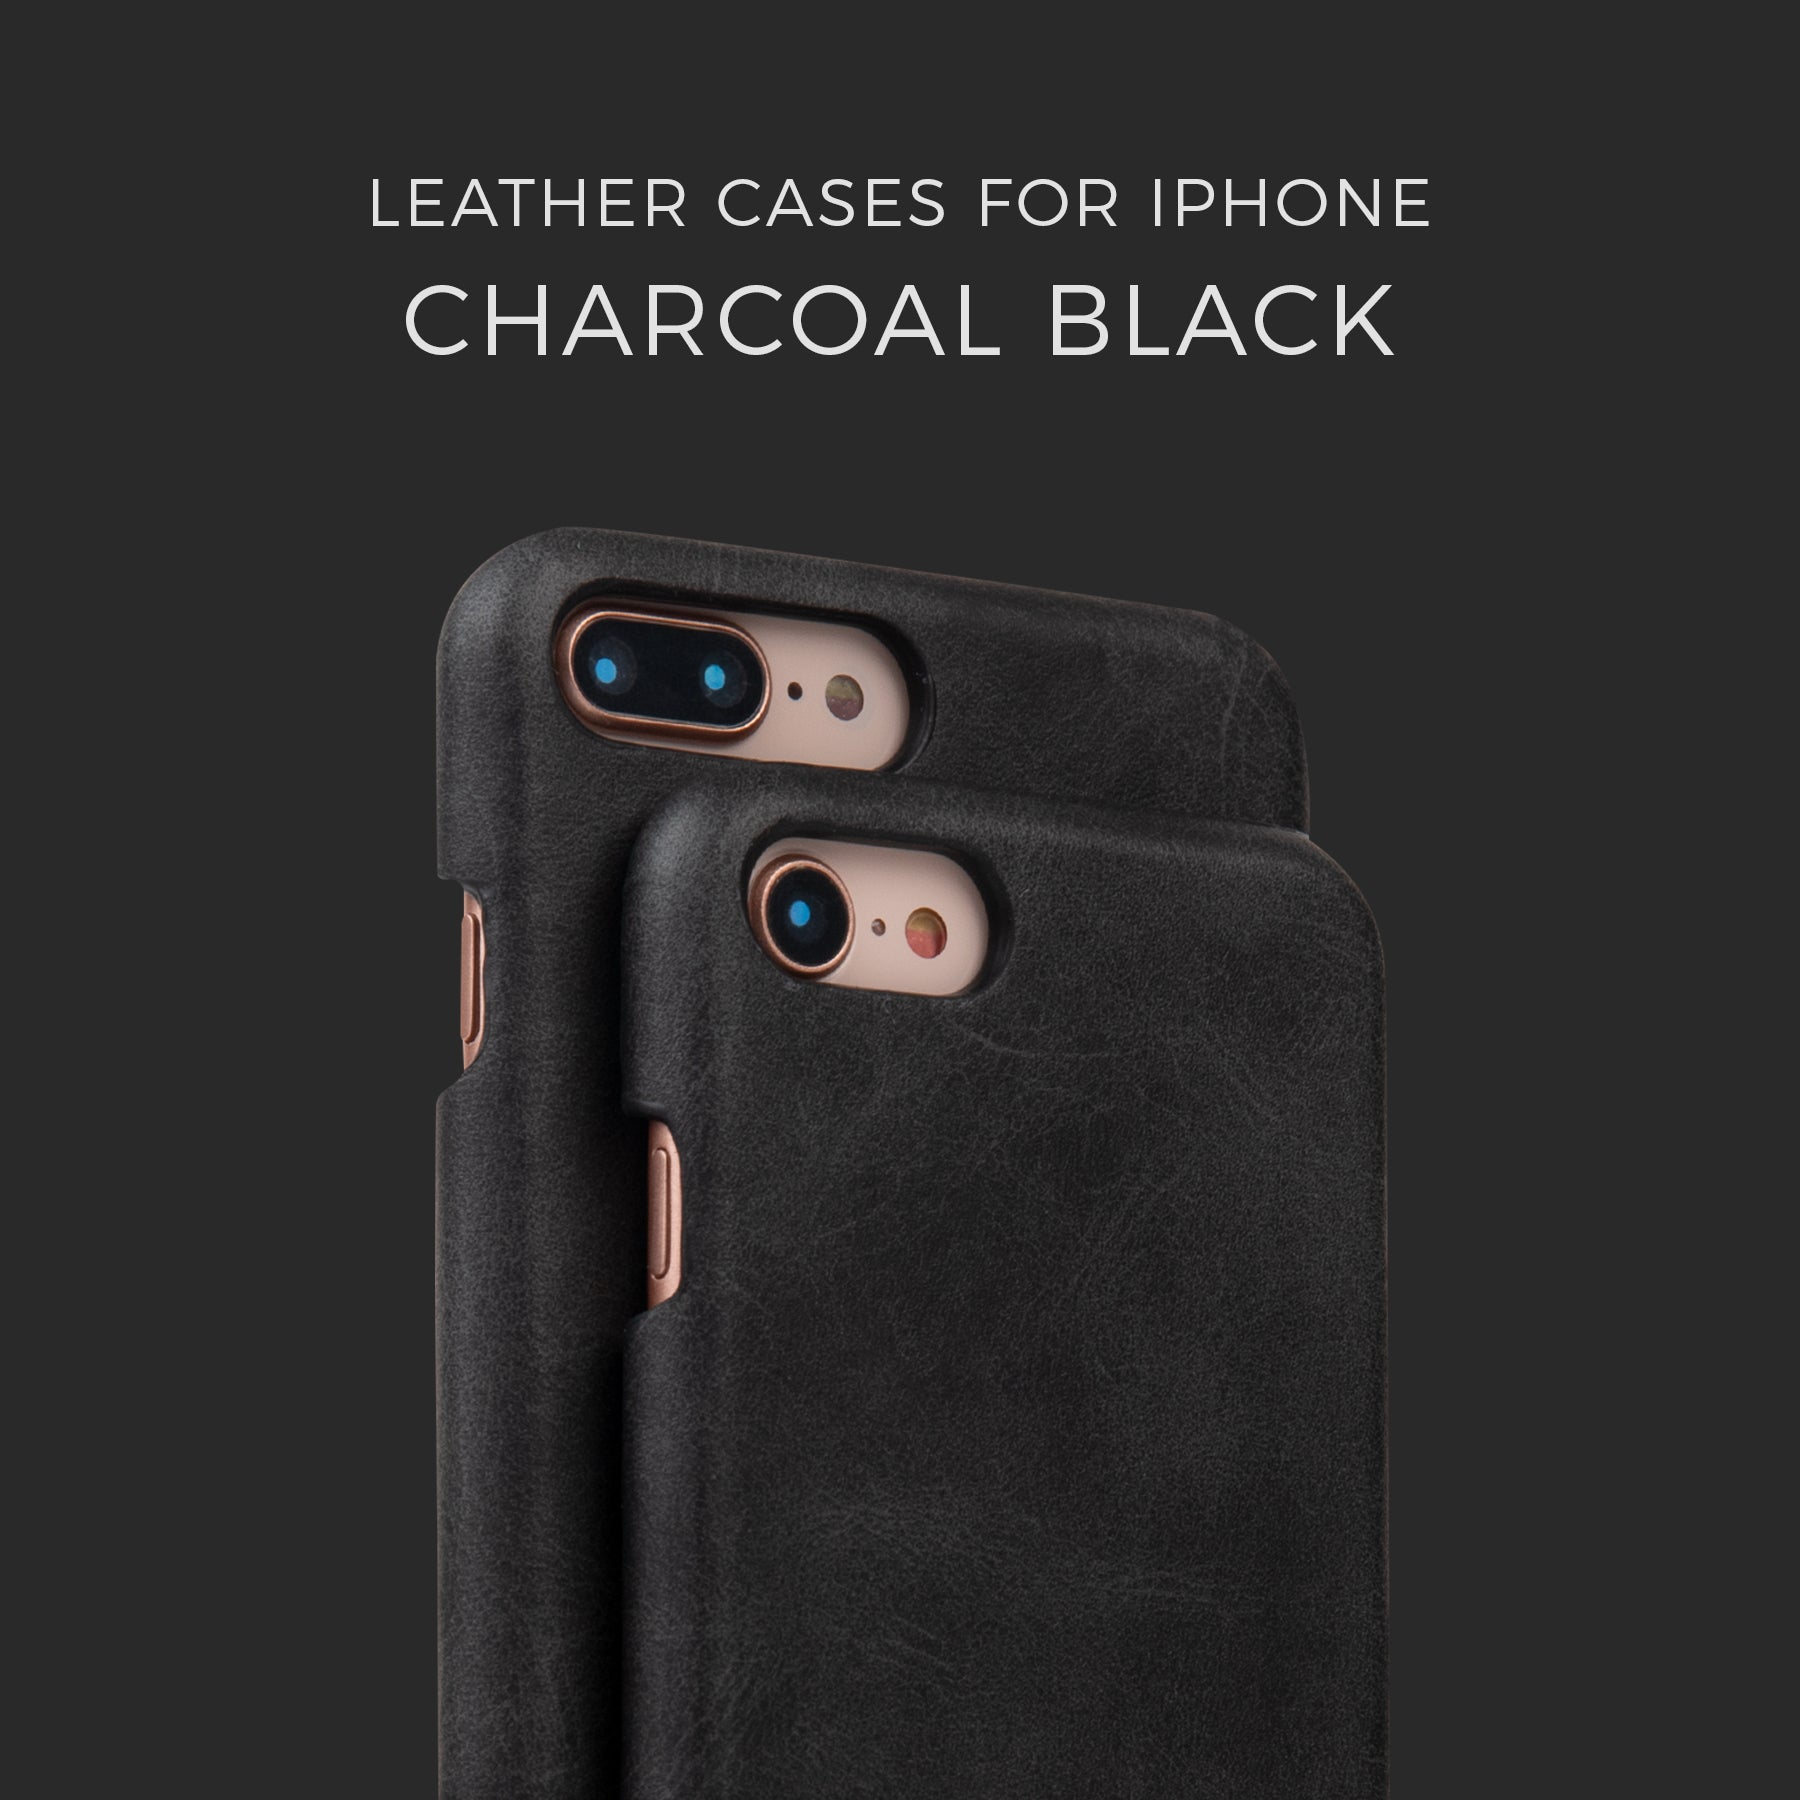 Charcoal Black Leather Case